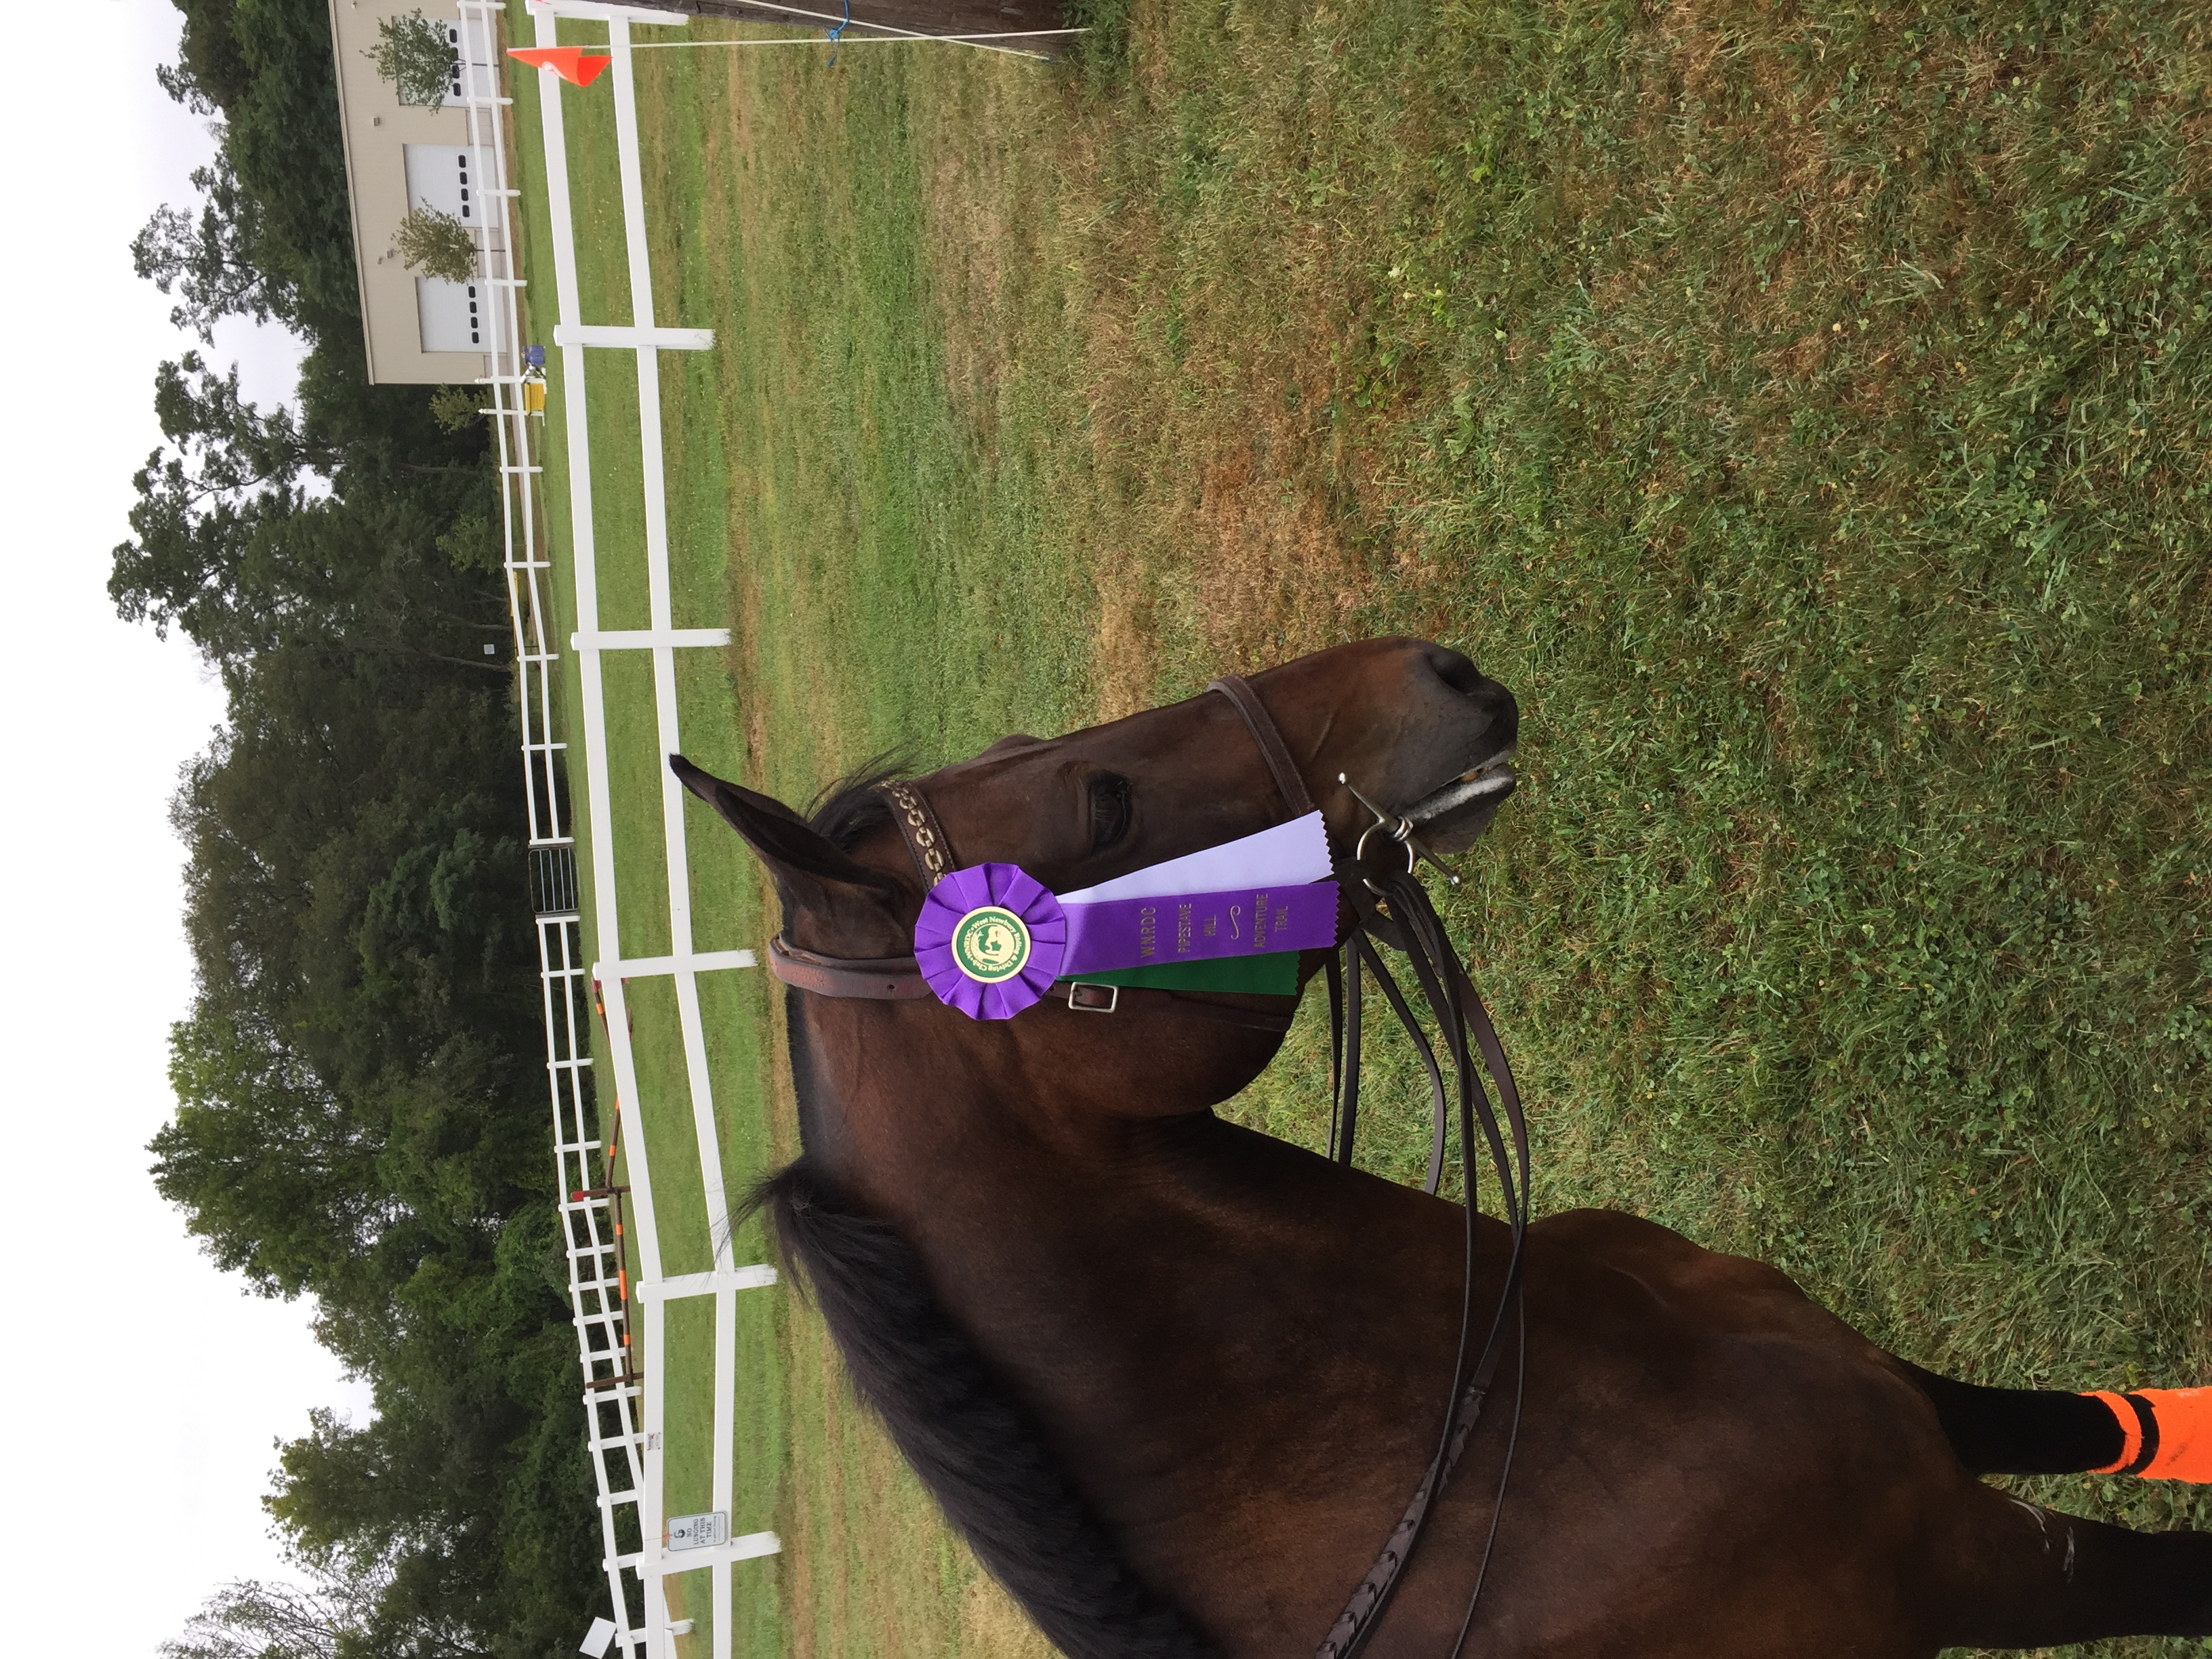 lessons, horsebackriding, training